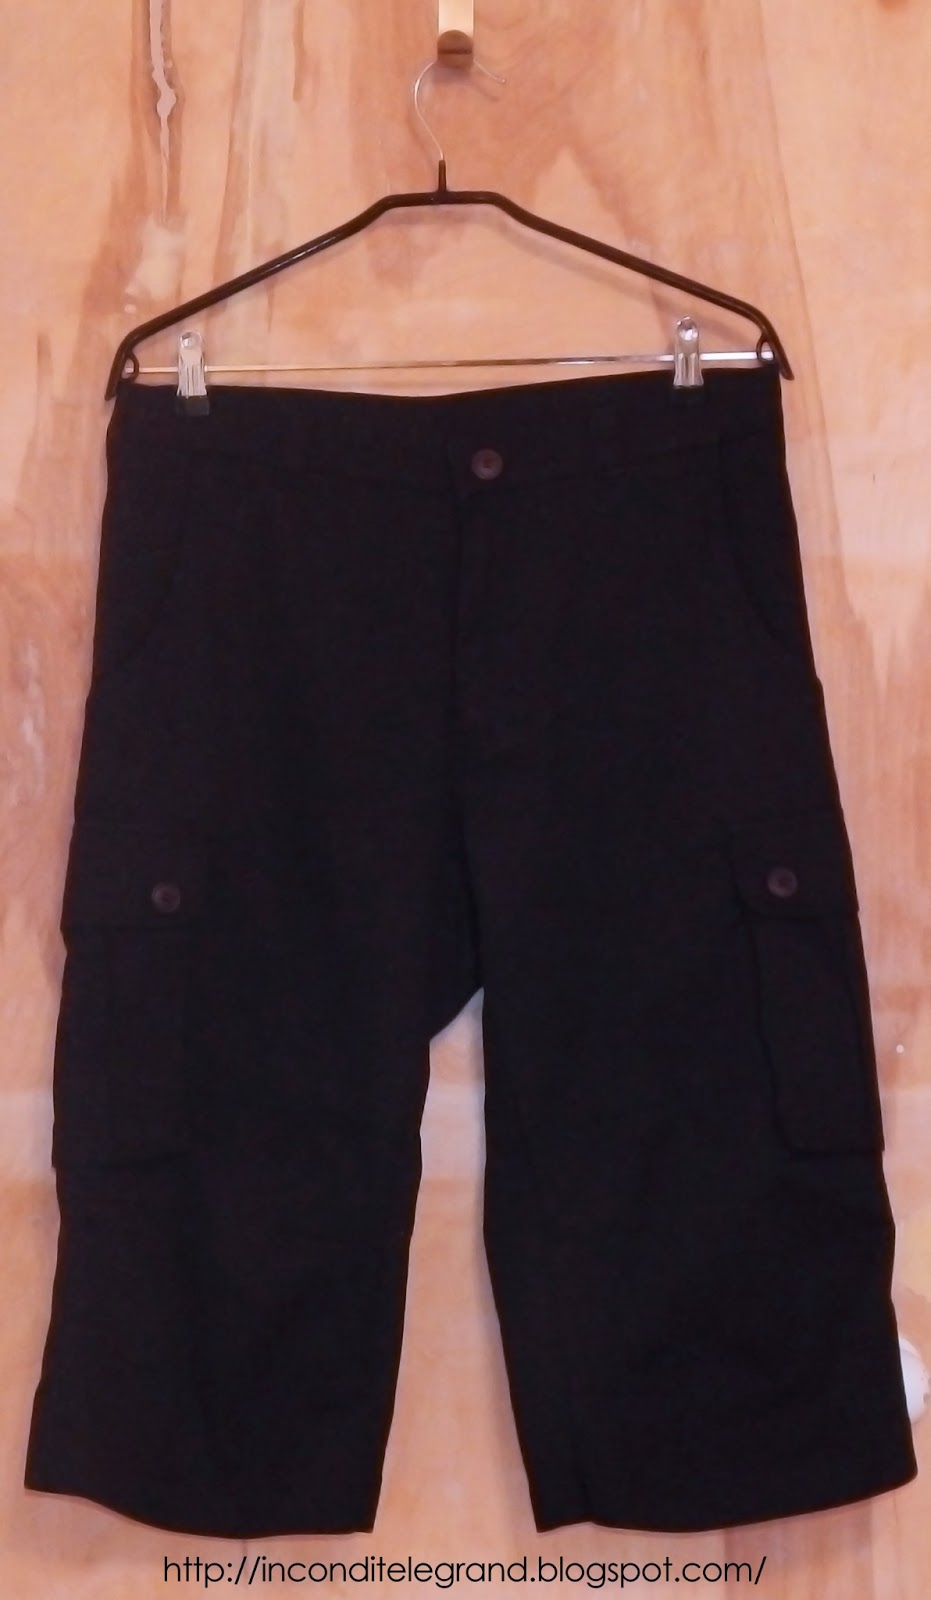 Cargo short front view